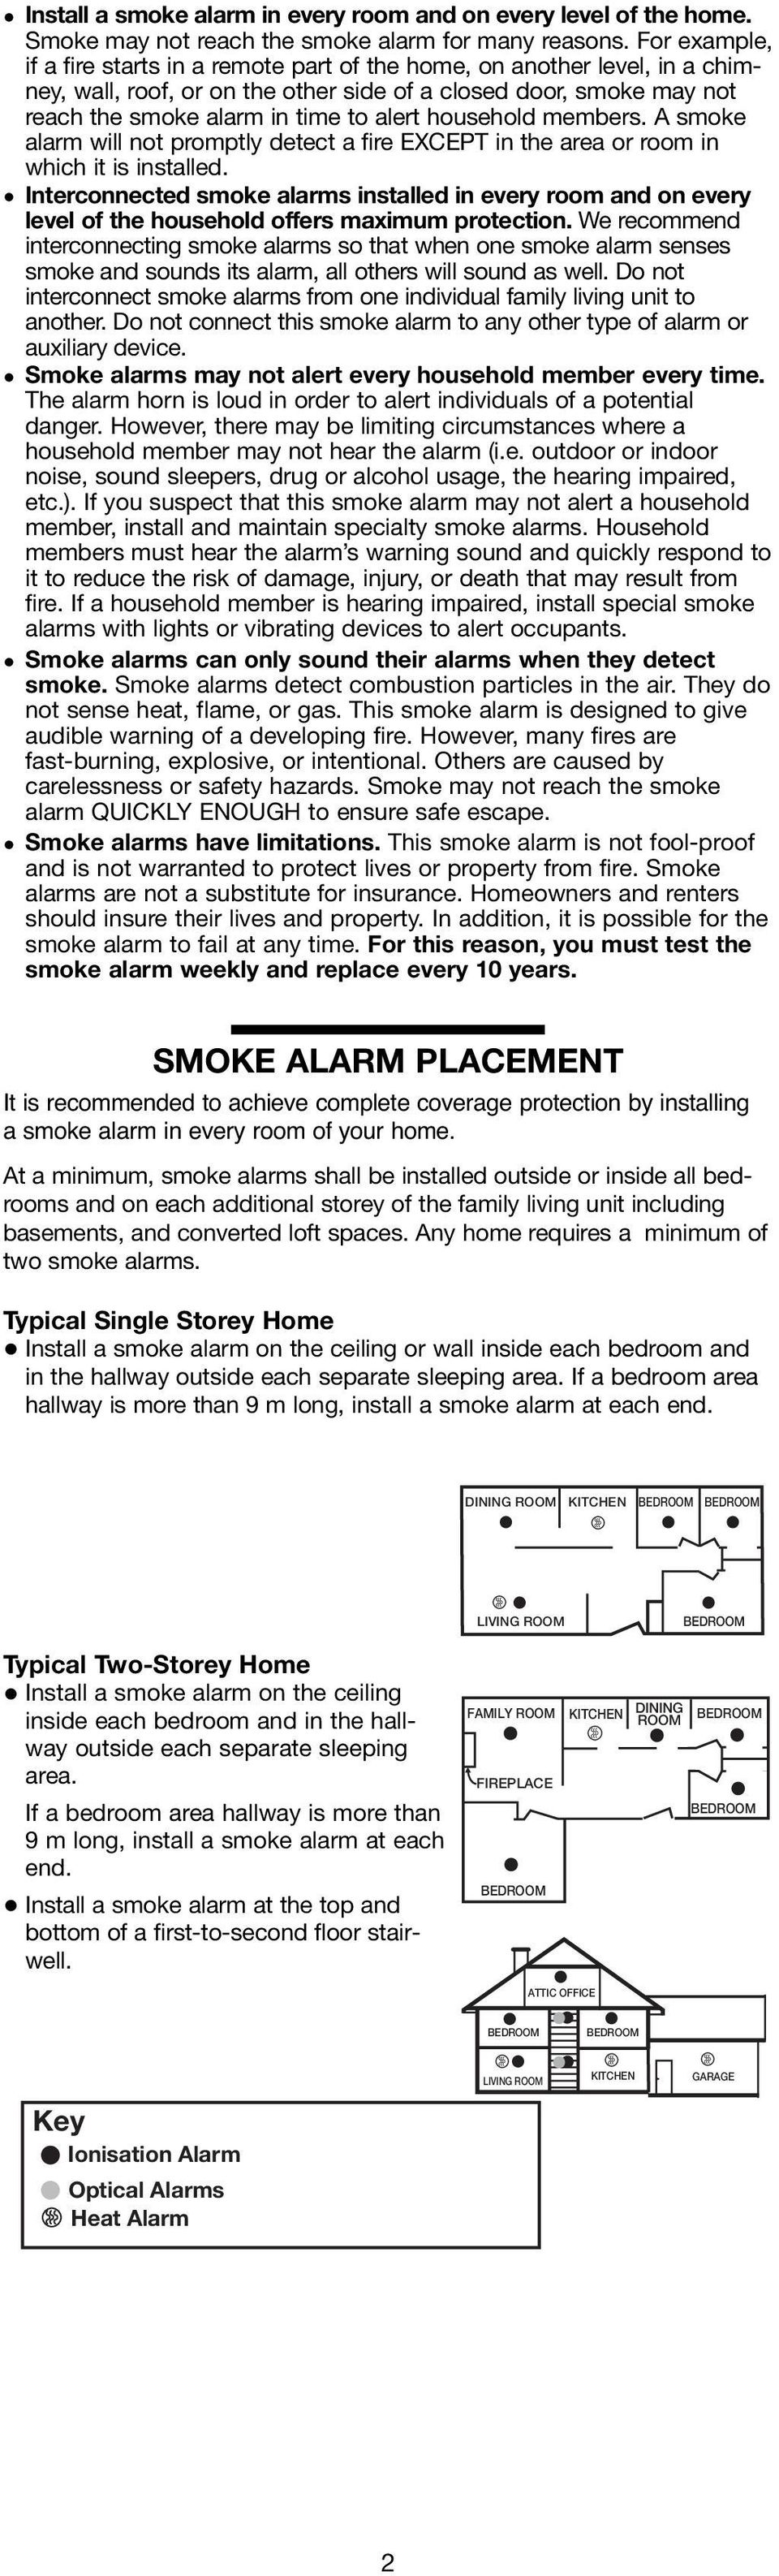 household members. A smoke alarm will not promptly detect a fire EXCEPT in the area or room in which it is installed.